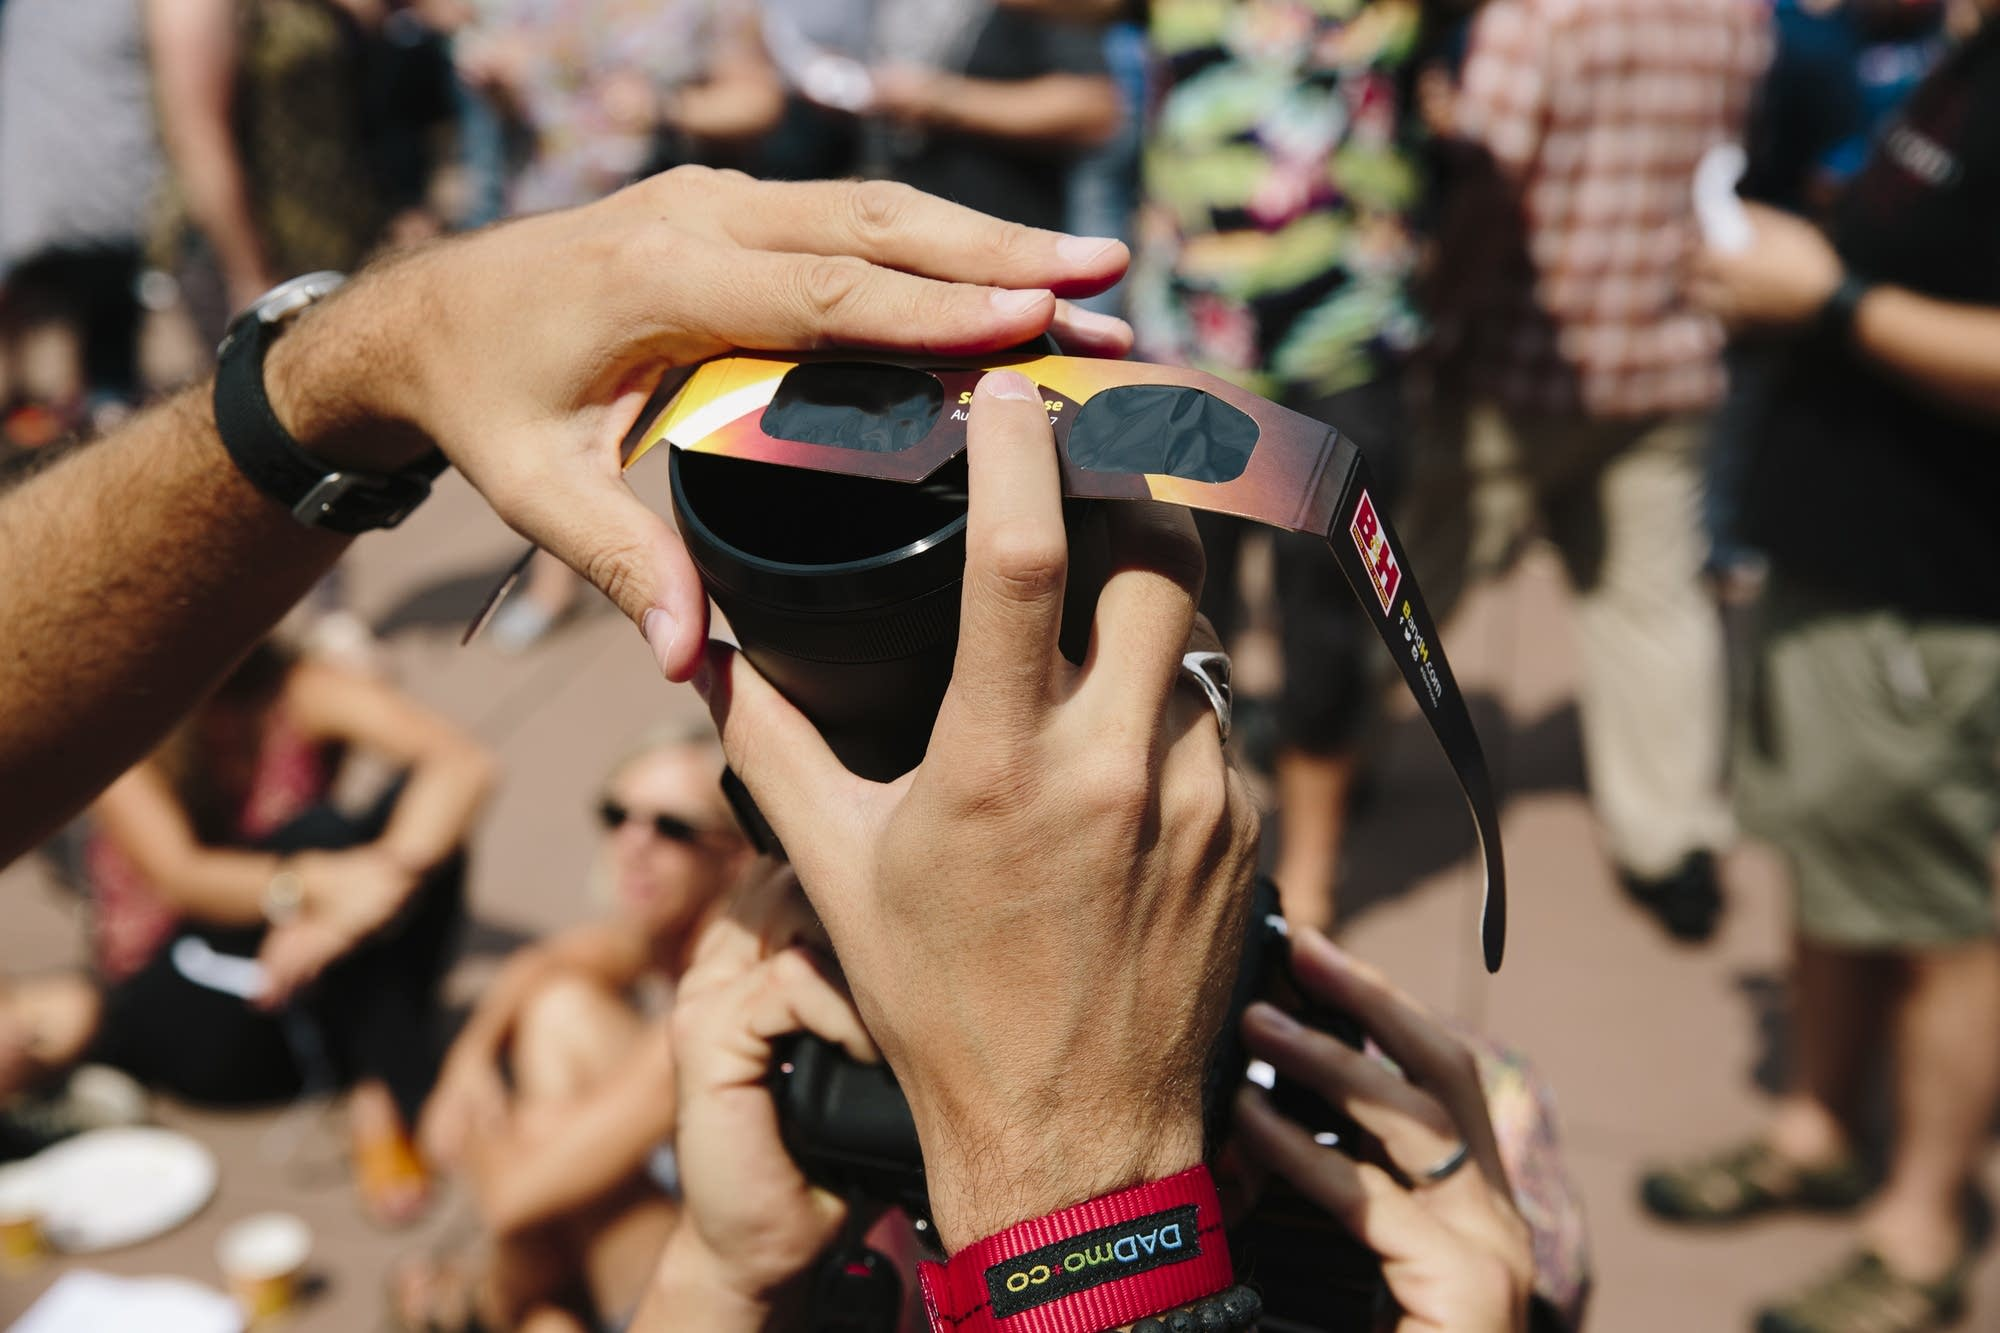 People hold eclipse glasses in front of a camera.